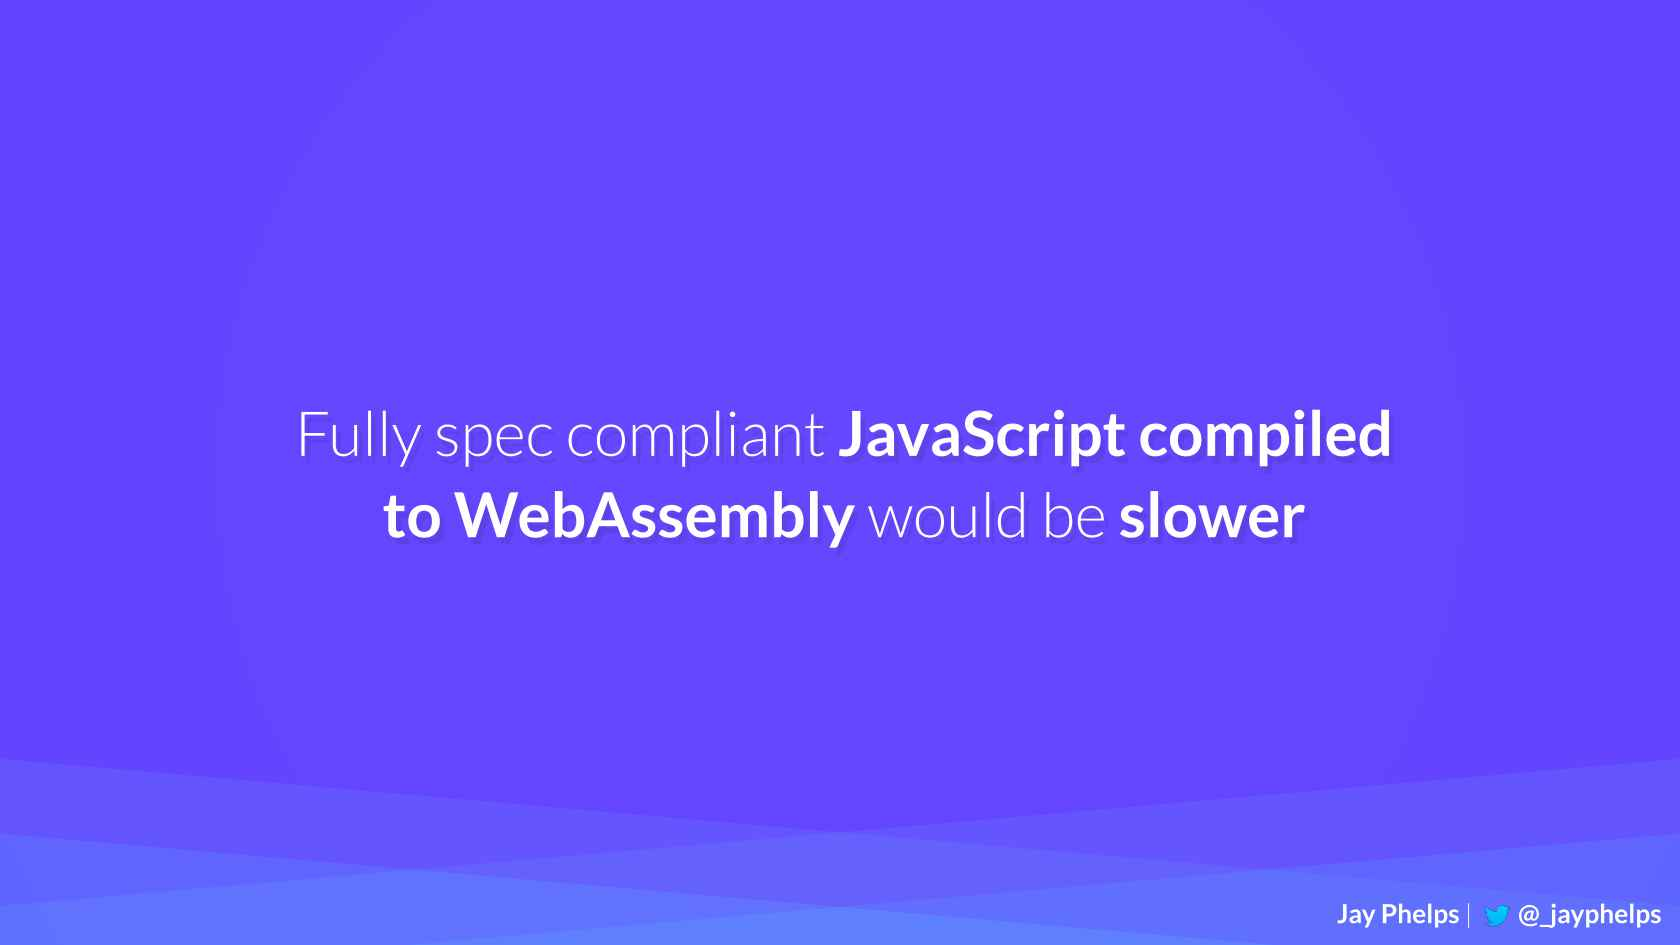 WebAssembly  Neither Web Nor Assembly, All Revolutionary